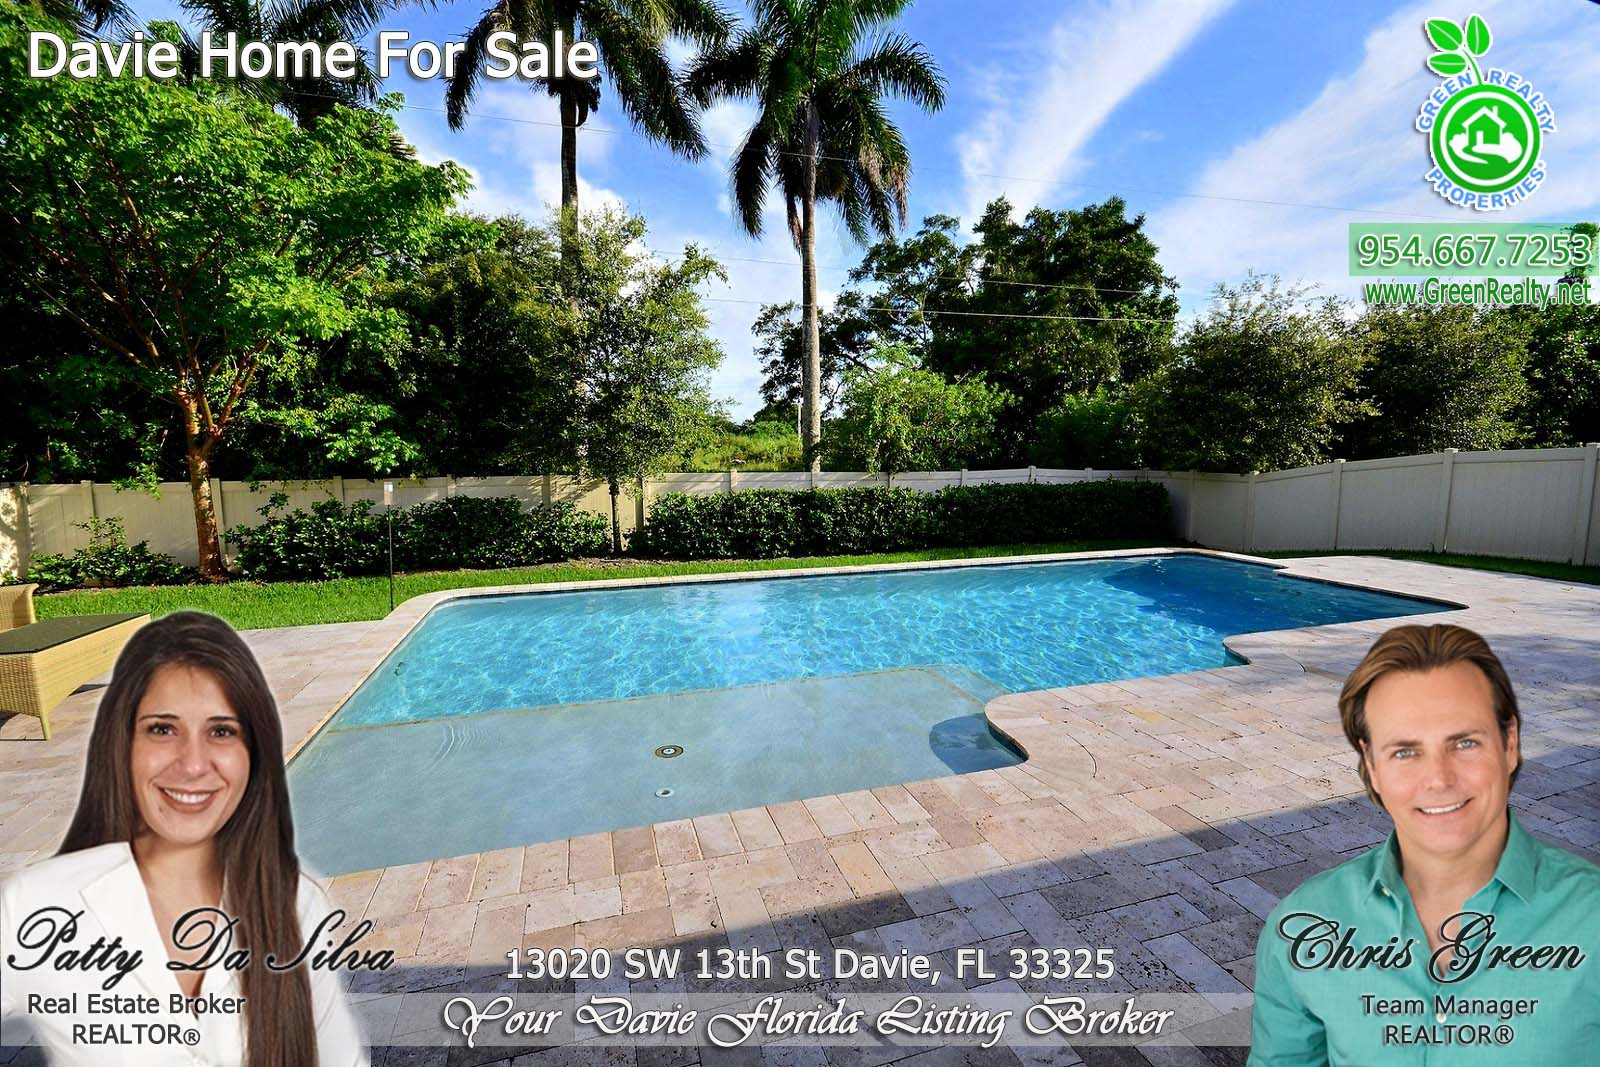 21 Homes For Sale in Davie Florida (1)